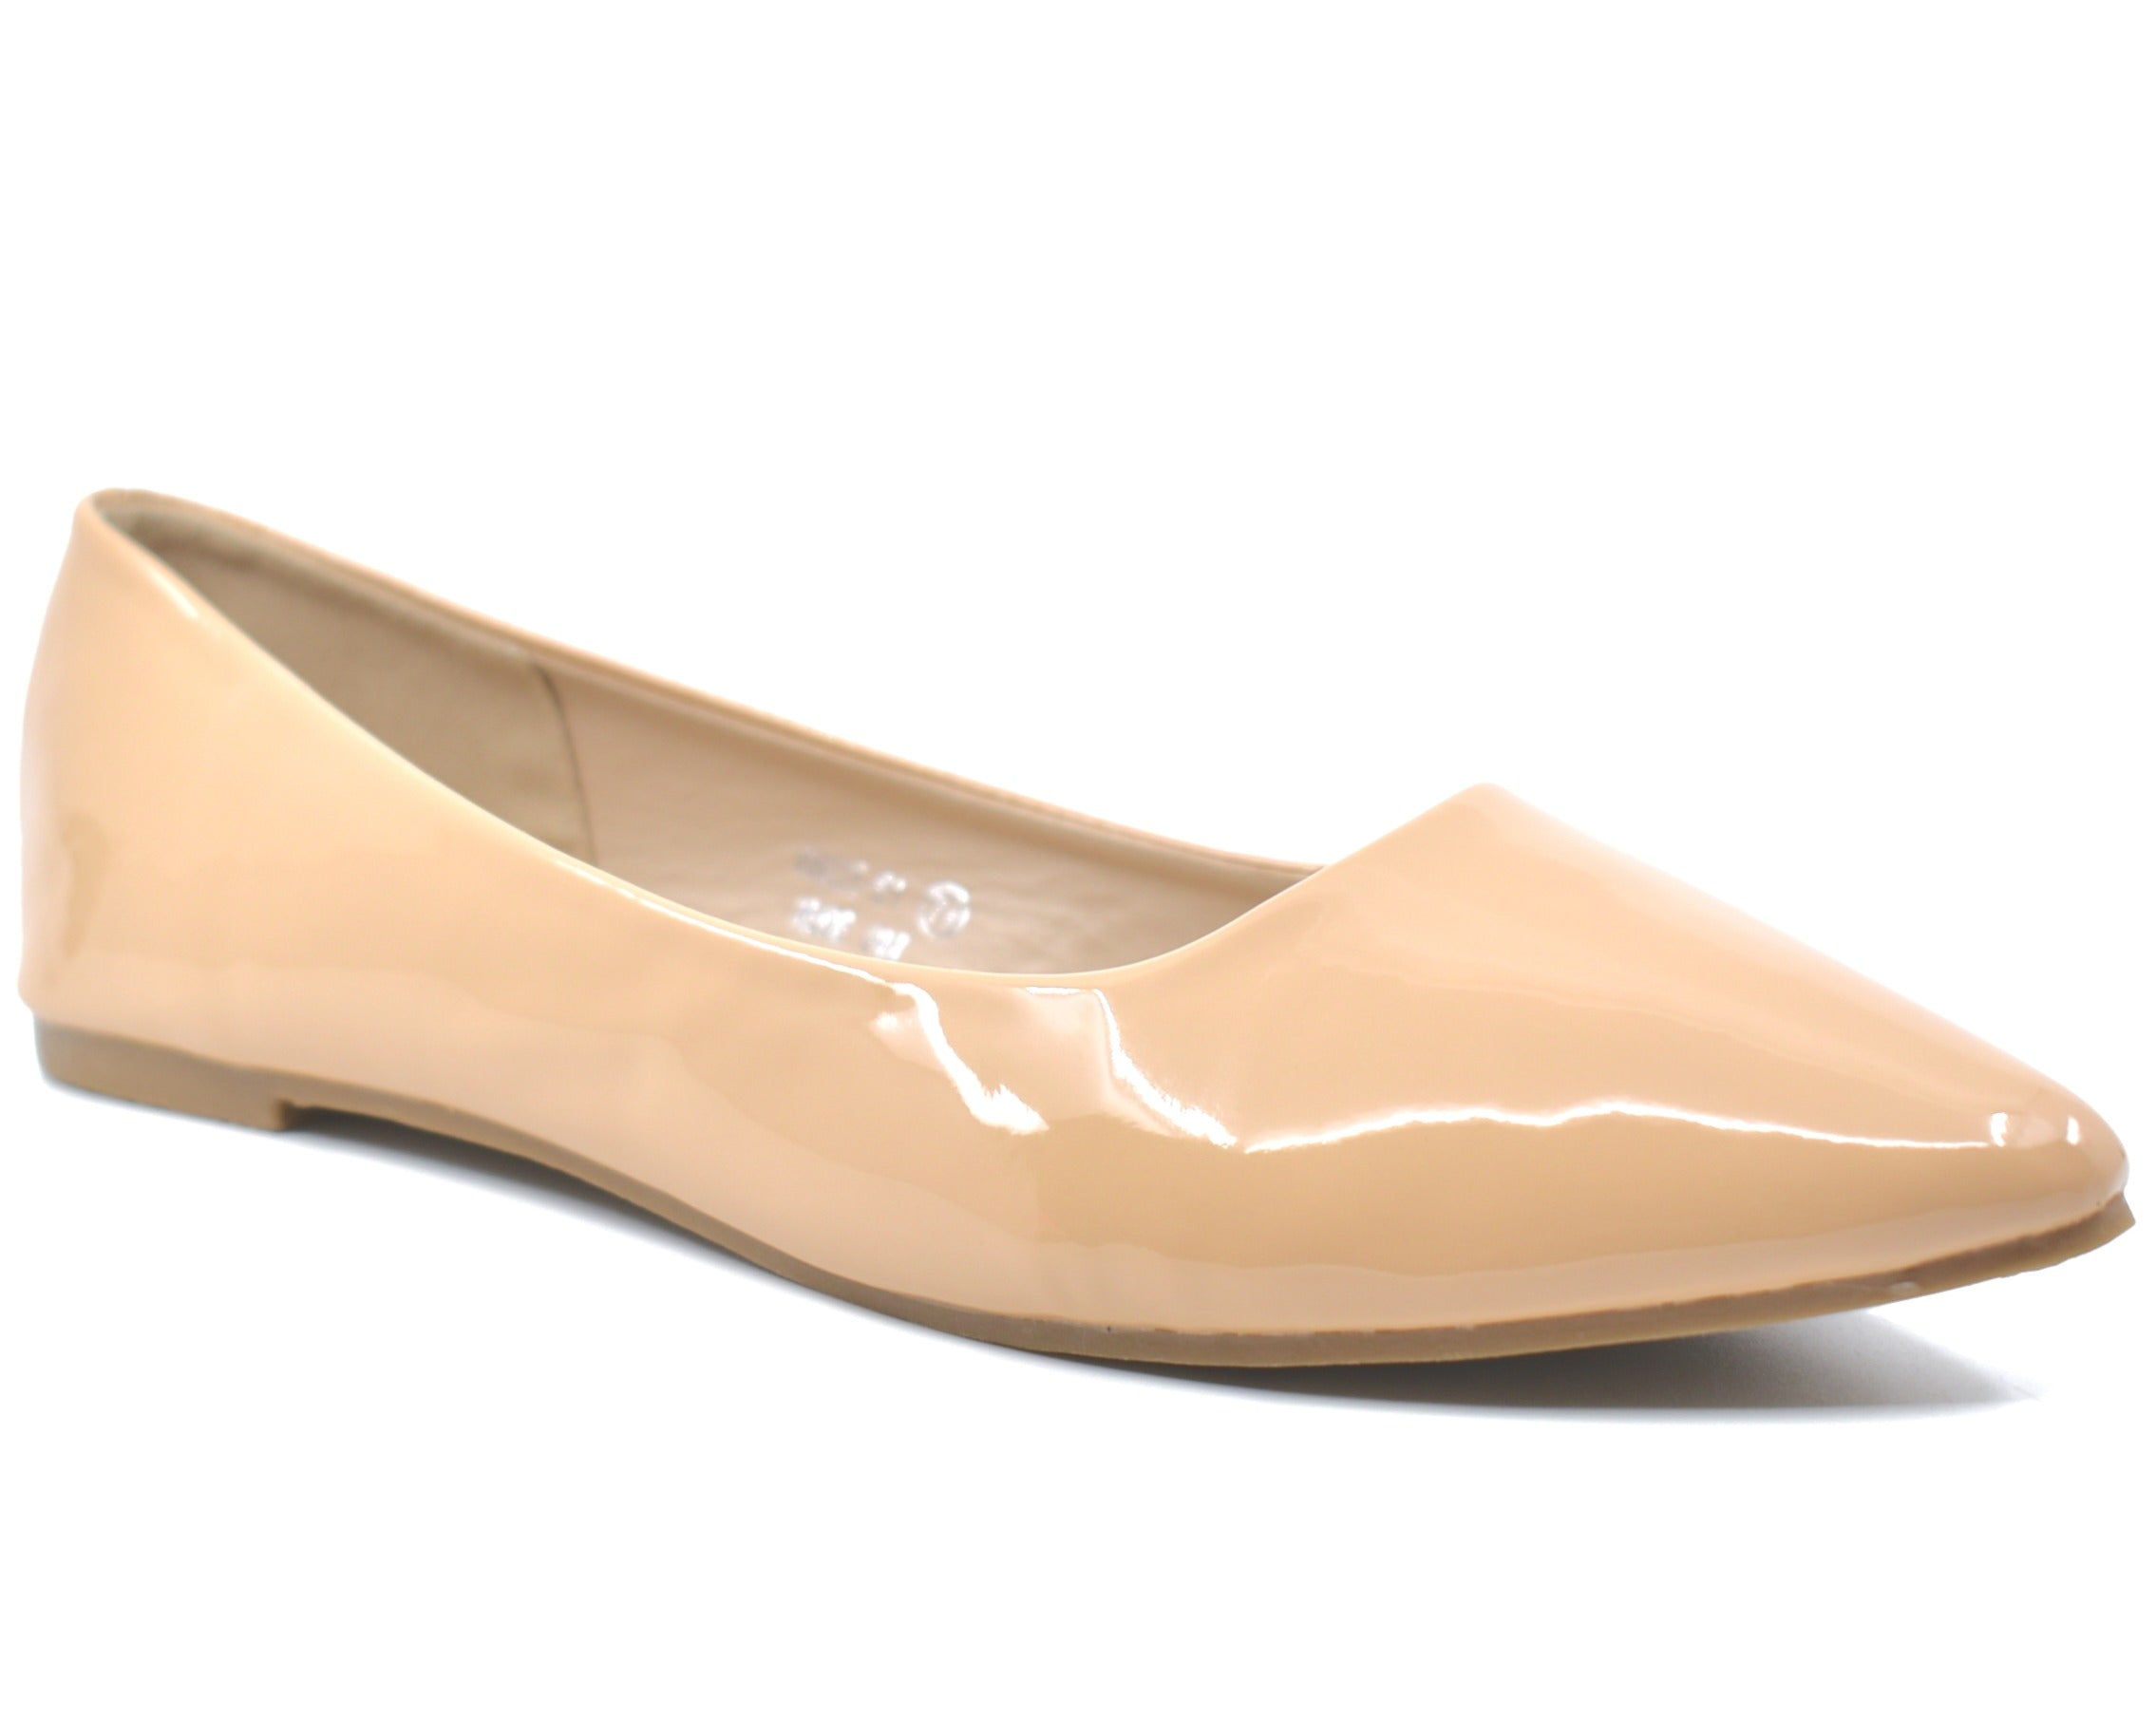 Angie Faux Patent Leather Pointed Toe Ballet Flats